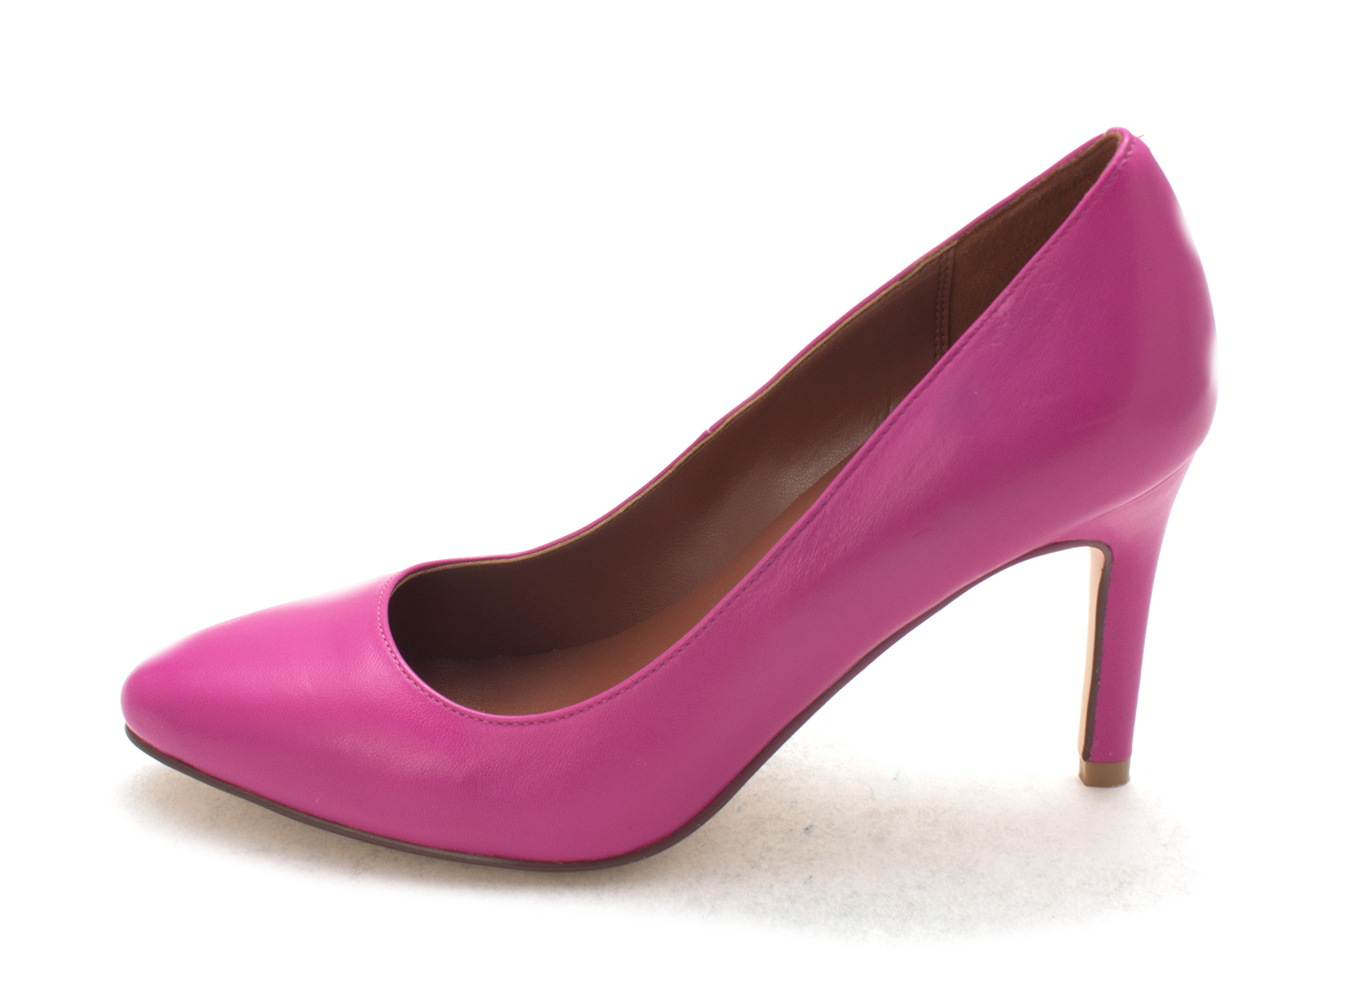 Cole Haan Womens 14A4034 Cap Toe Classic Pumps Canyon Rose Size 6.0